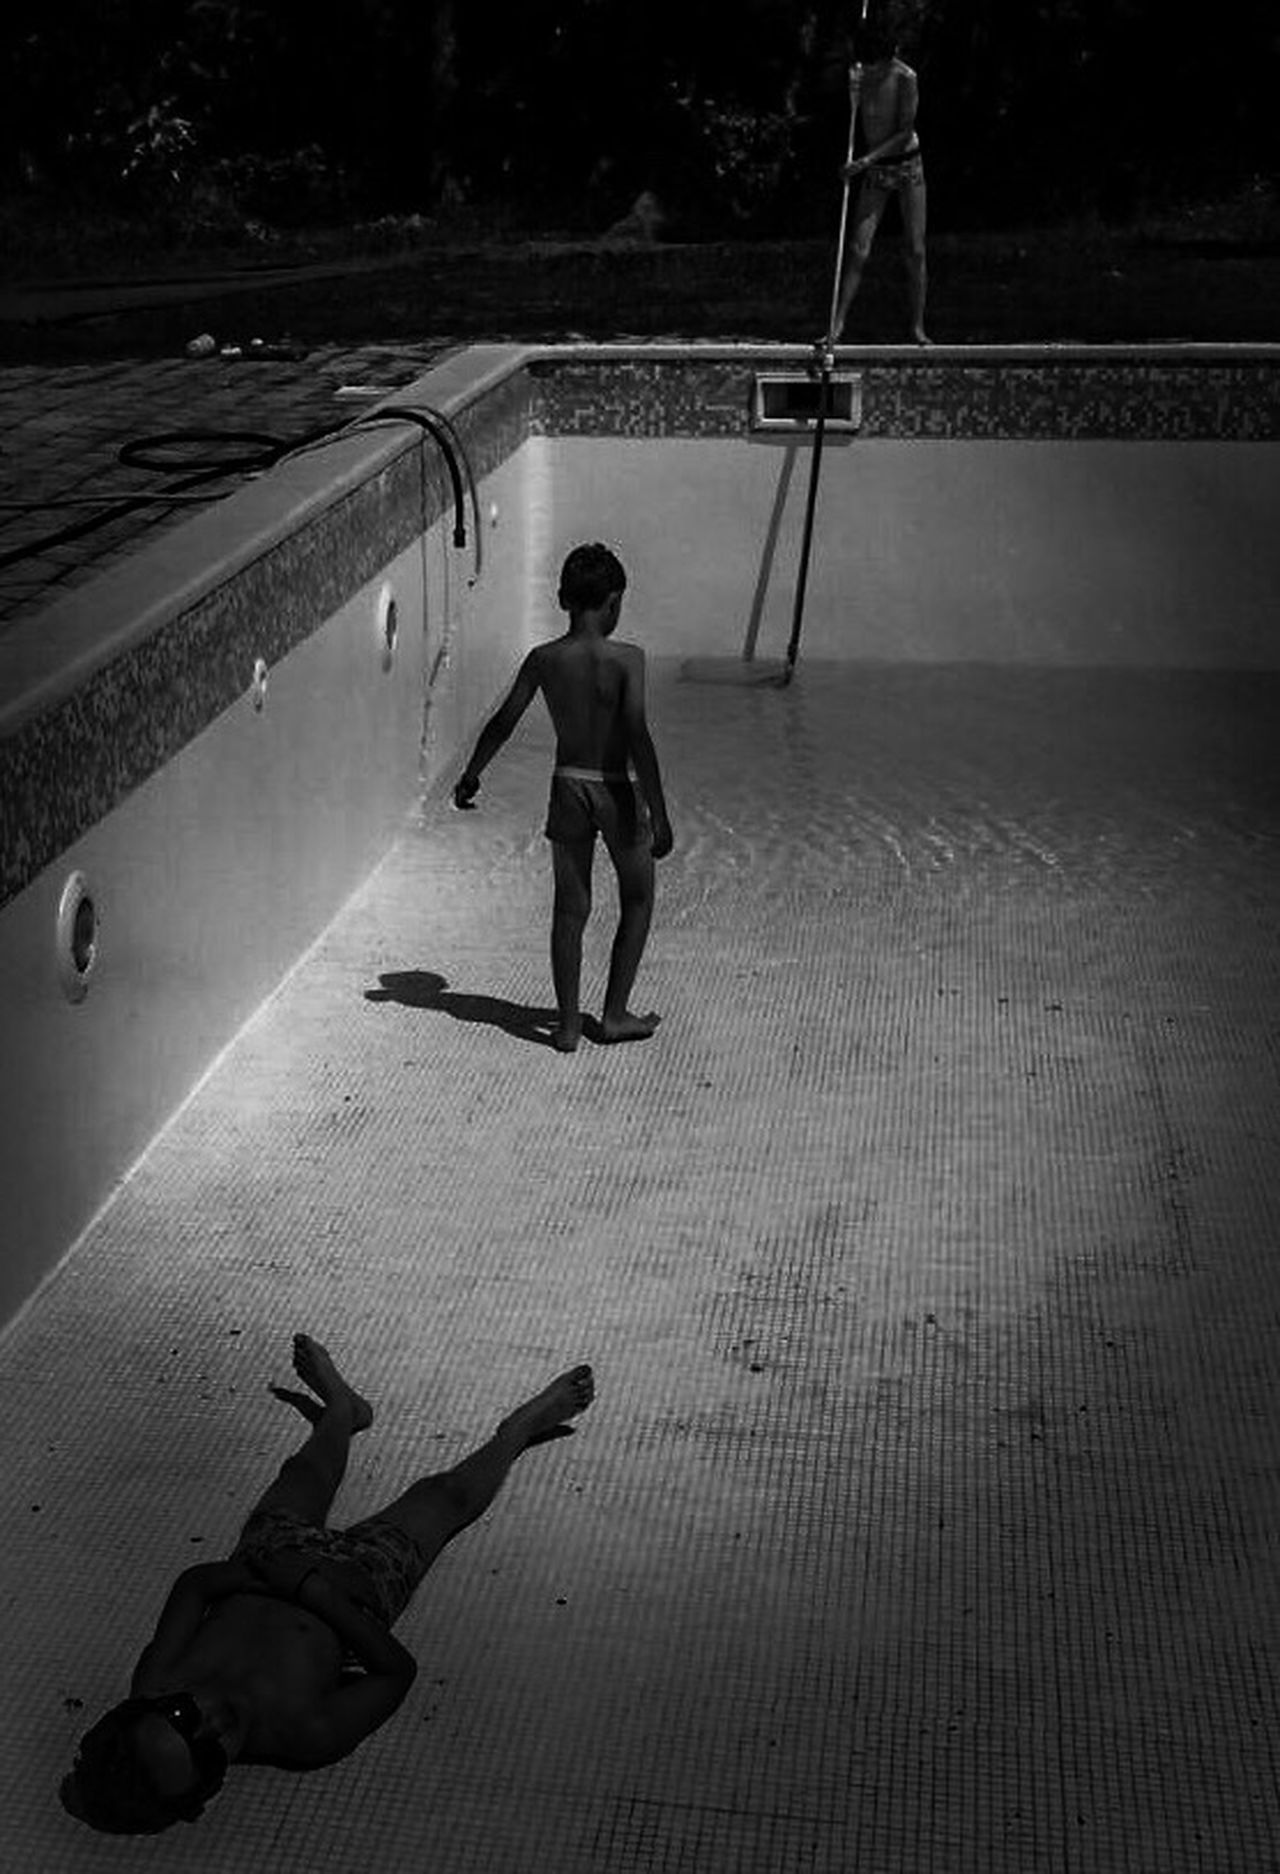 Swimming Pool Empty Places EyeEm Best Shots Black And White Photography Noir Et Blanc Enjoying Life Swimingpool Water Joke Kids Having Fun Outdoors Nettoyage De Printemps Préparer L'ete Showcase March